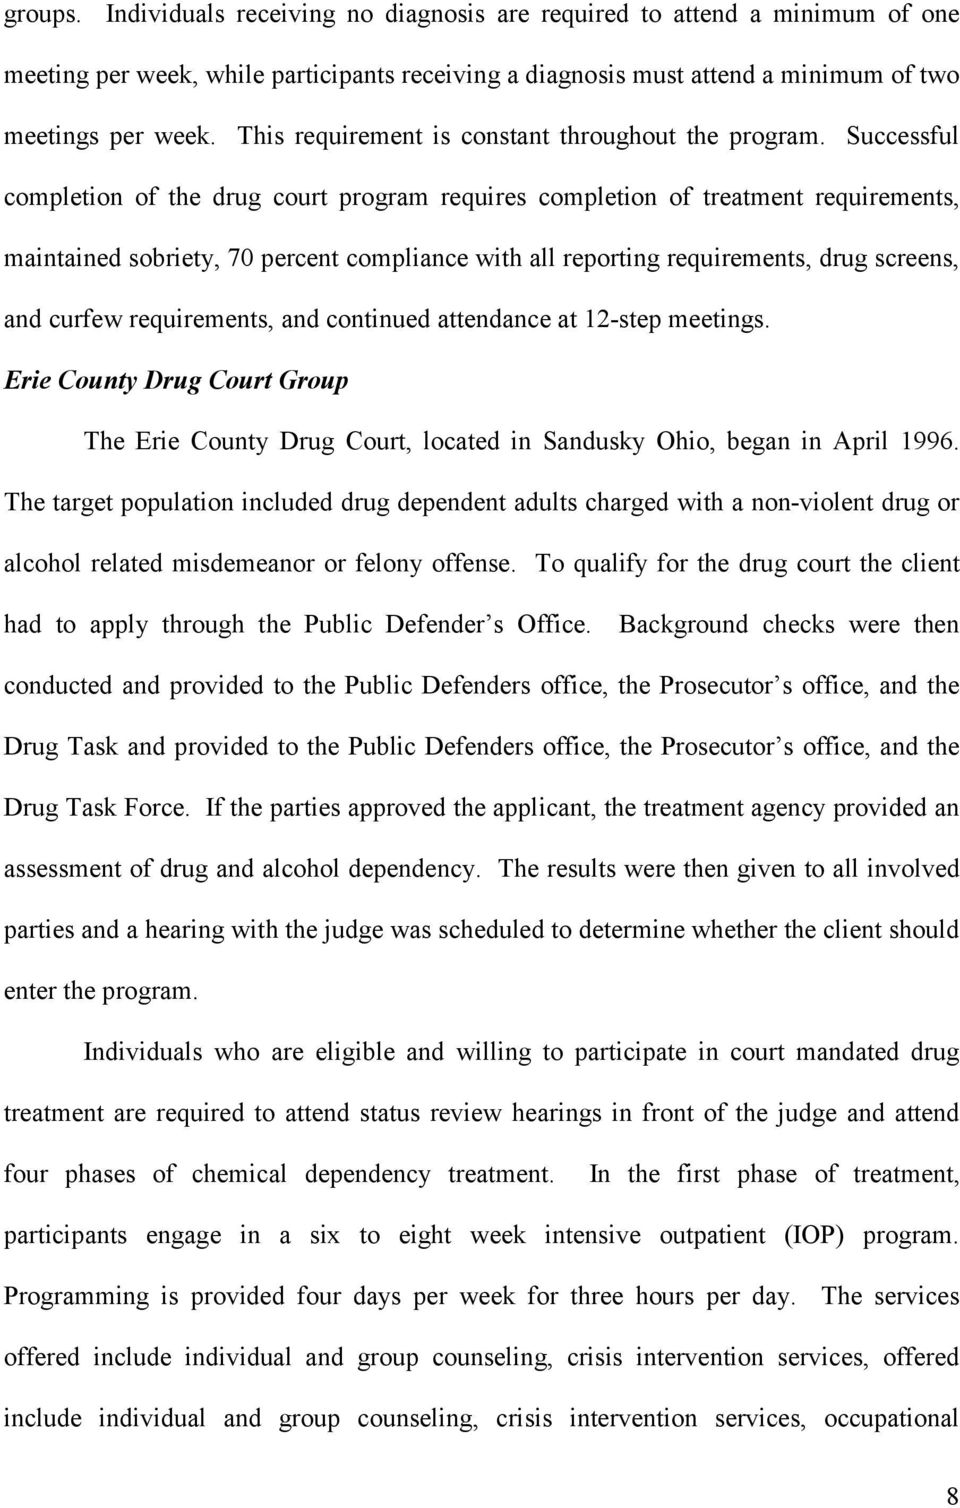 Successful completion of the drug court program requires completion of treatment requirements, maintained sobriety, 70 percent compliance with all reporting requirements, drug screens, and curfew